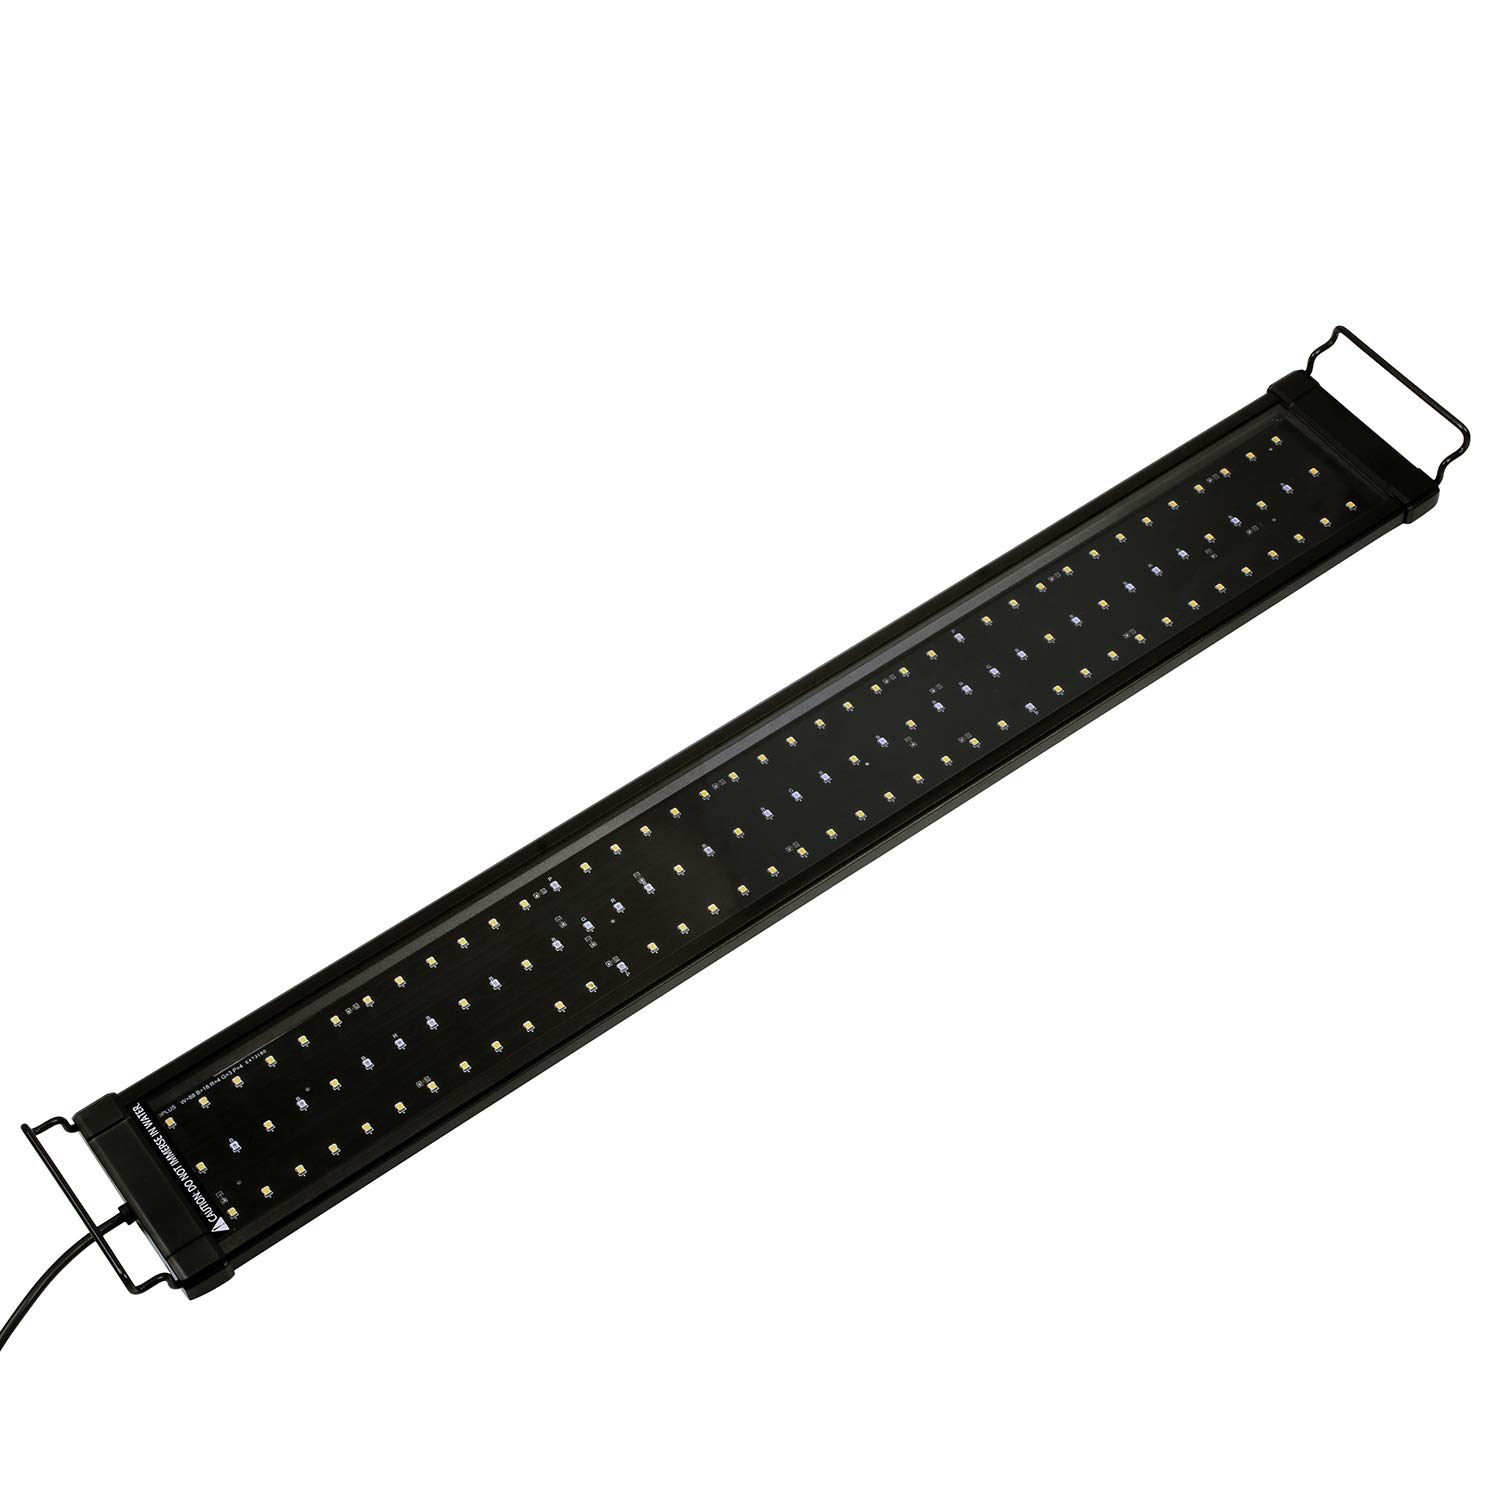 NICREW ClassicLED Plus LED Aquarium Light, Full Spectrum Fish Tank Light for Freshwater, 30 to 36-Inch by NICREW